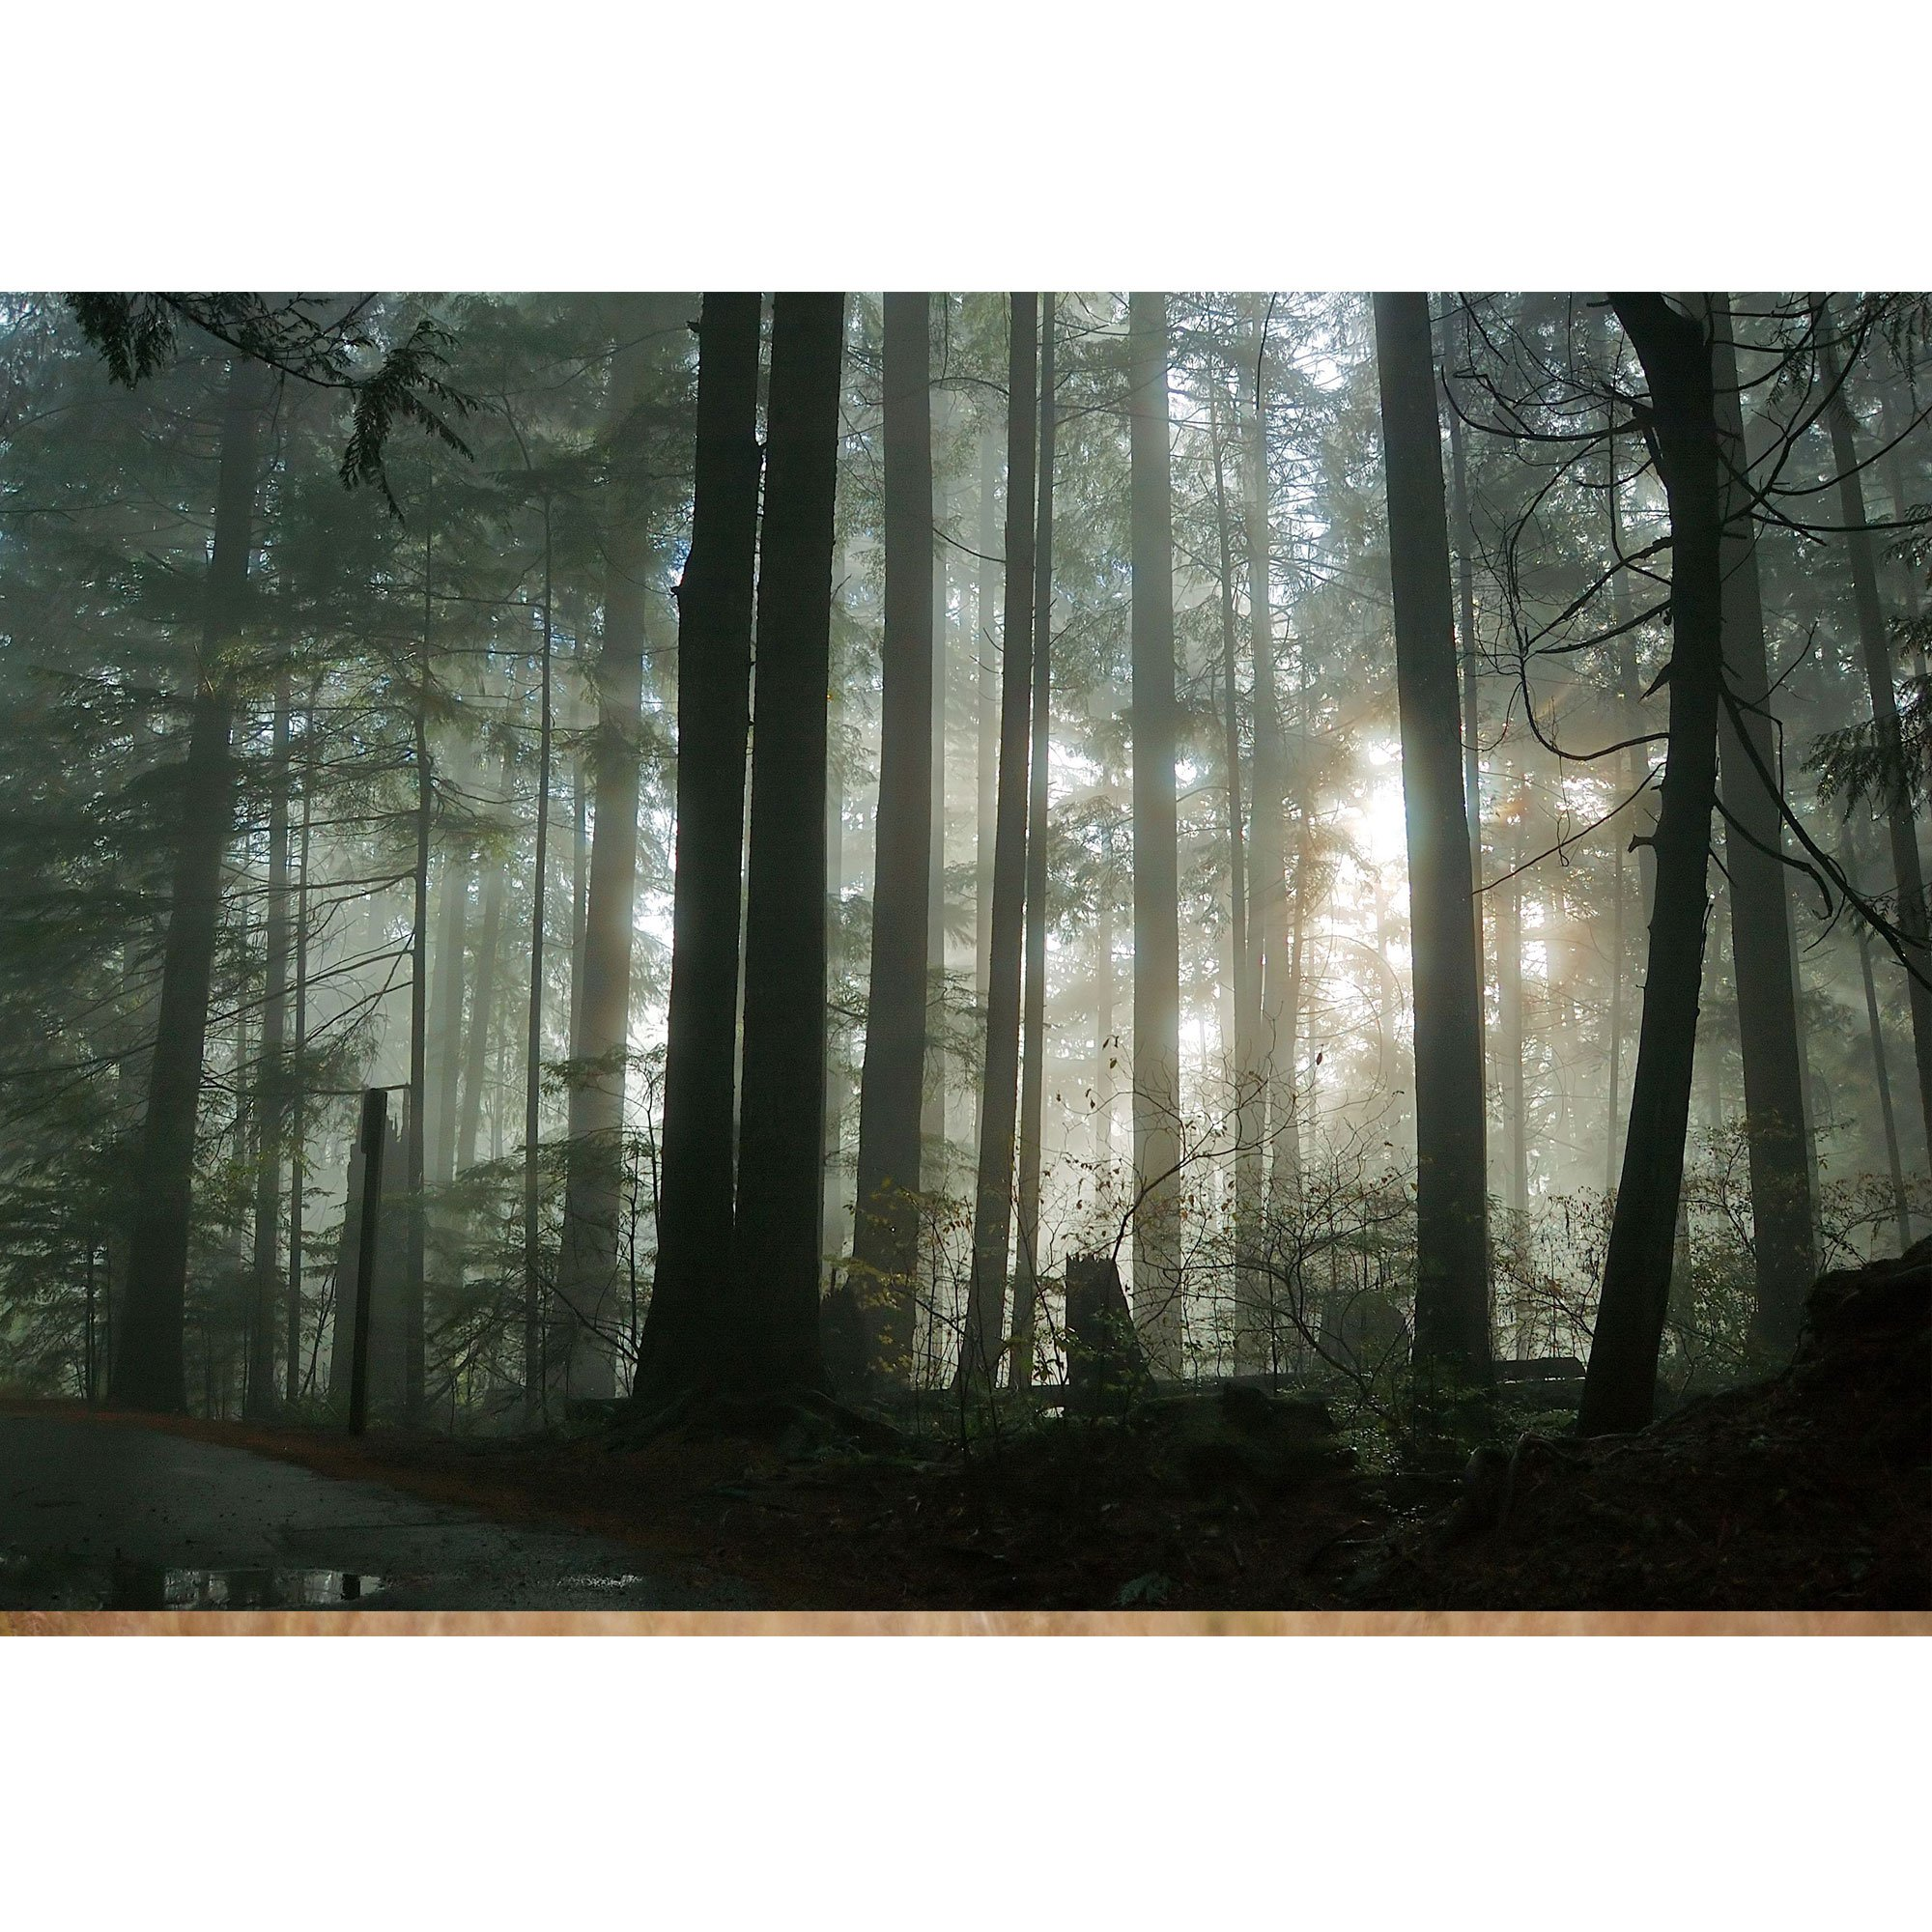 wall26 - Foggy Forest - Removable Wall Mural | Self-Adhesive Large Wallpaper - 100x144 inches by wall26 (Image #2)